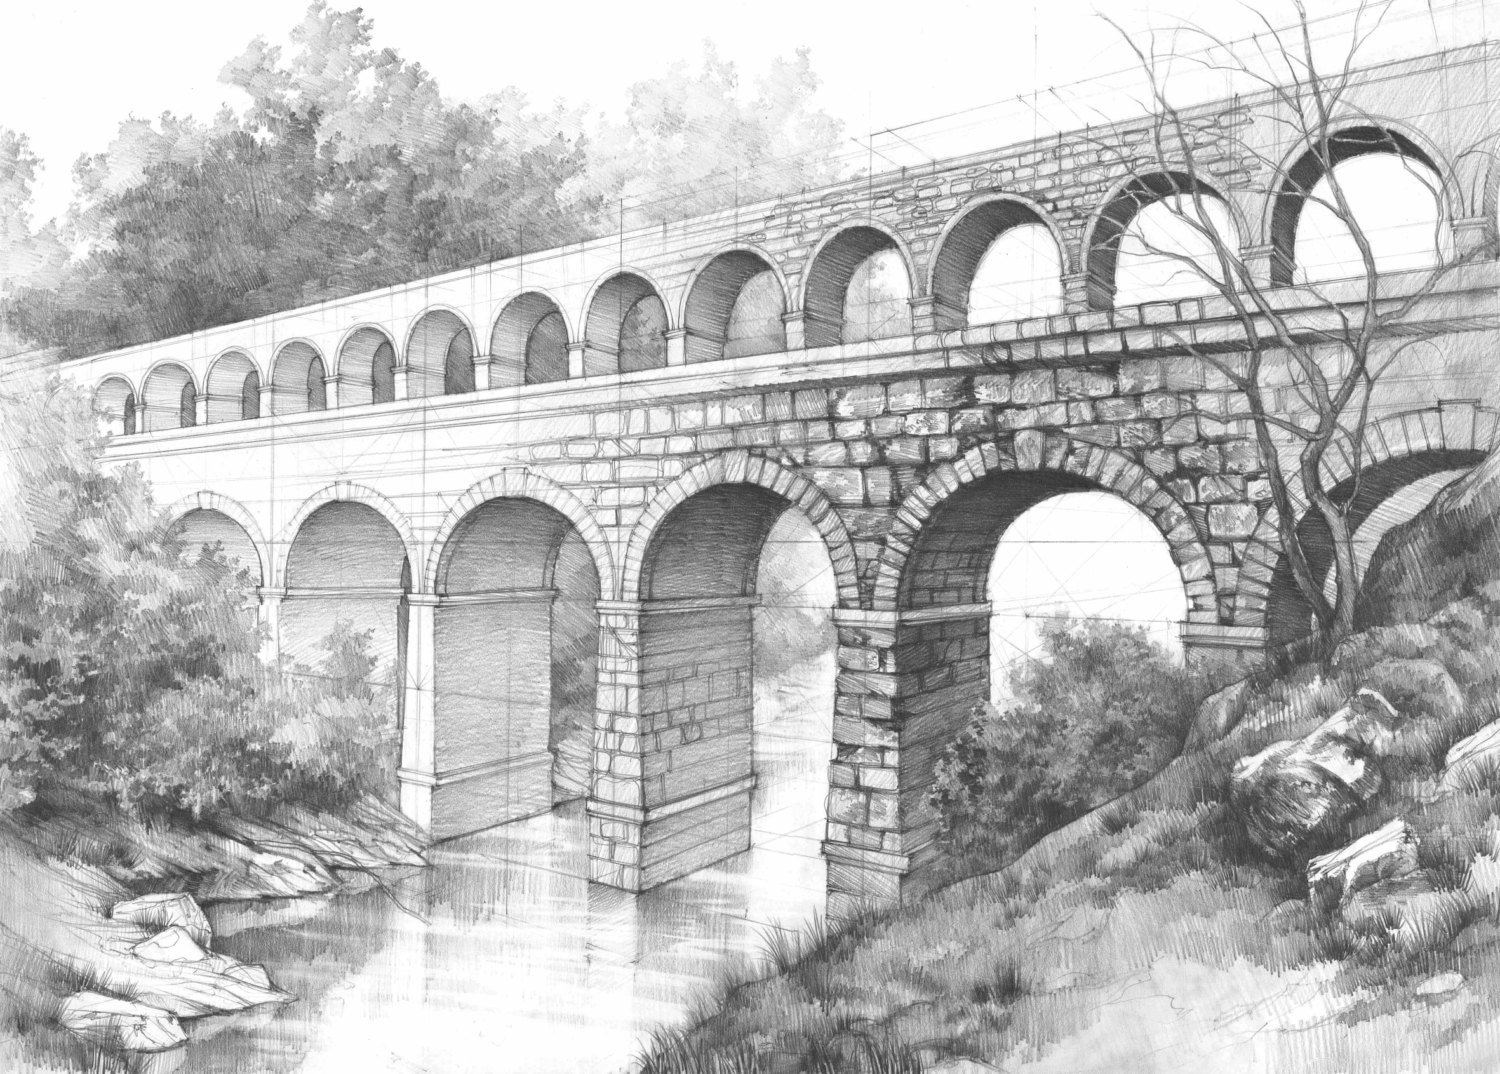 roman aqueducts and architecture essay Greek and roman architecture jennifer thackrah art 101 may 24, 2013 harvey tidwell greek and roman architecture the art of architecture has been around for thousands of years some of the most extravagant and amazing architectural designs and inventions came from the ancient greek and roman time period.